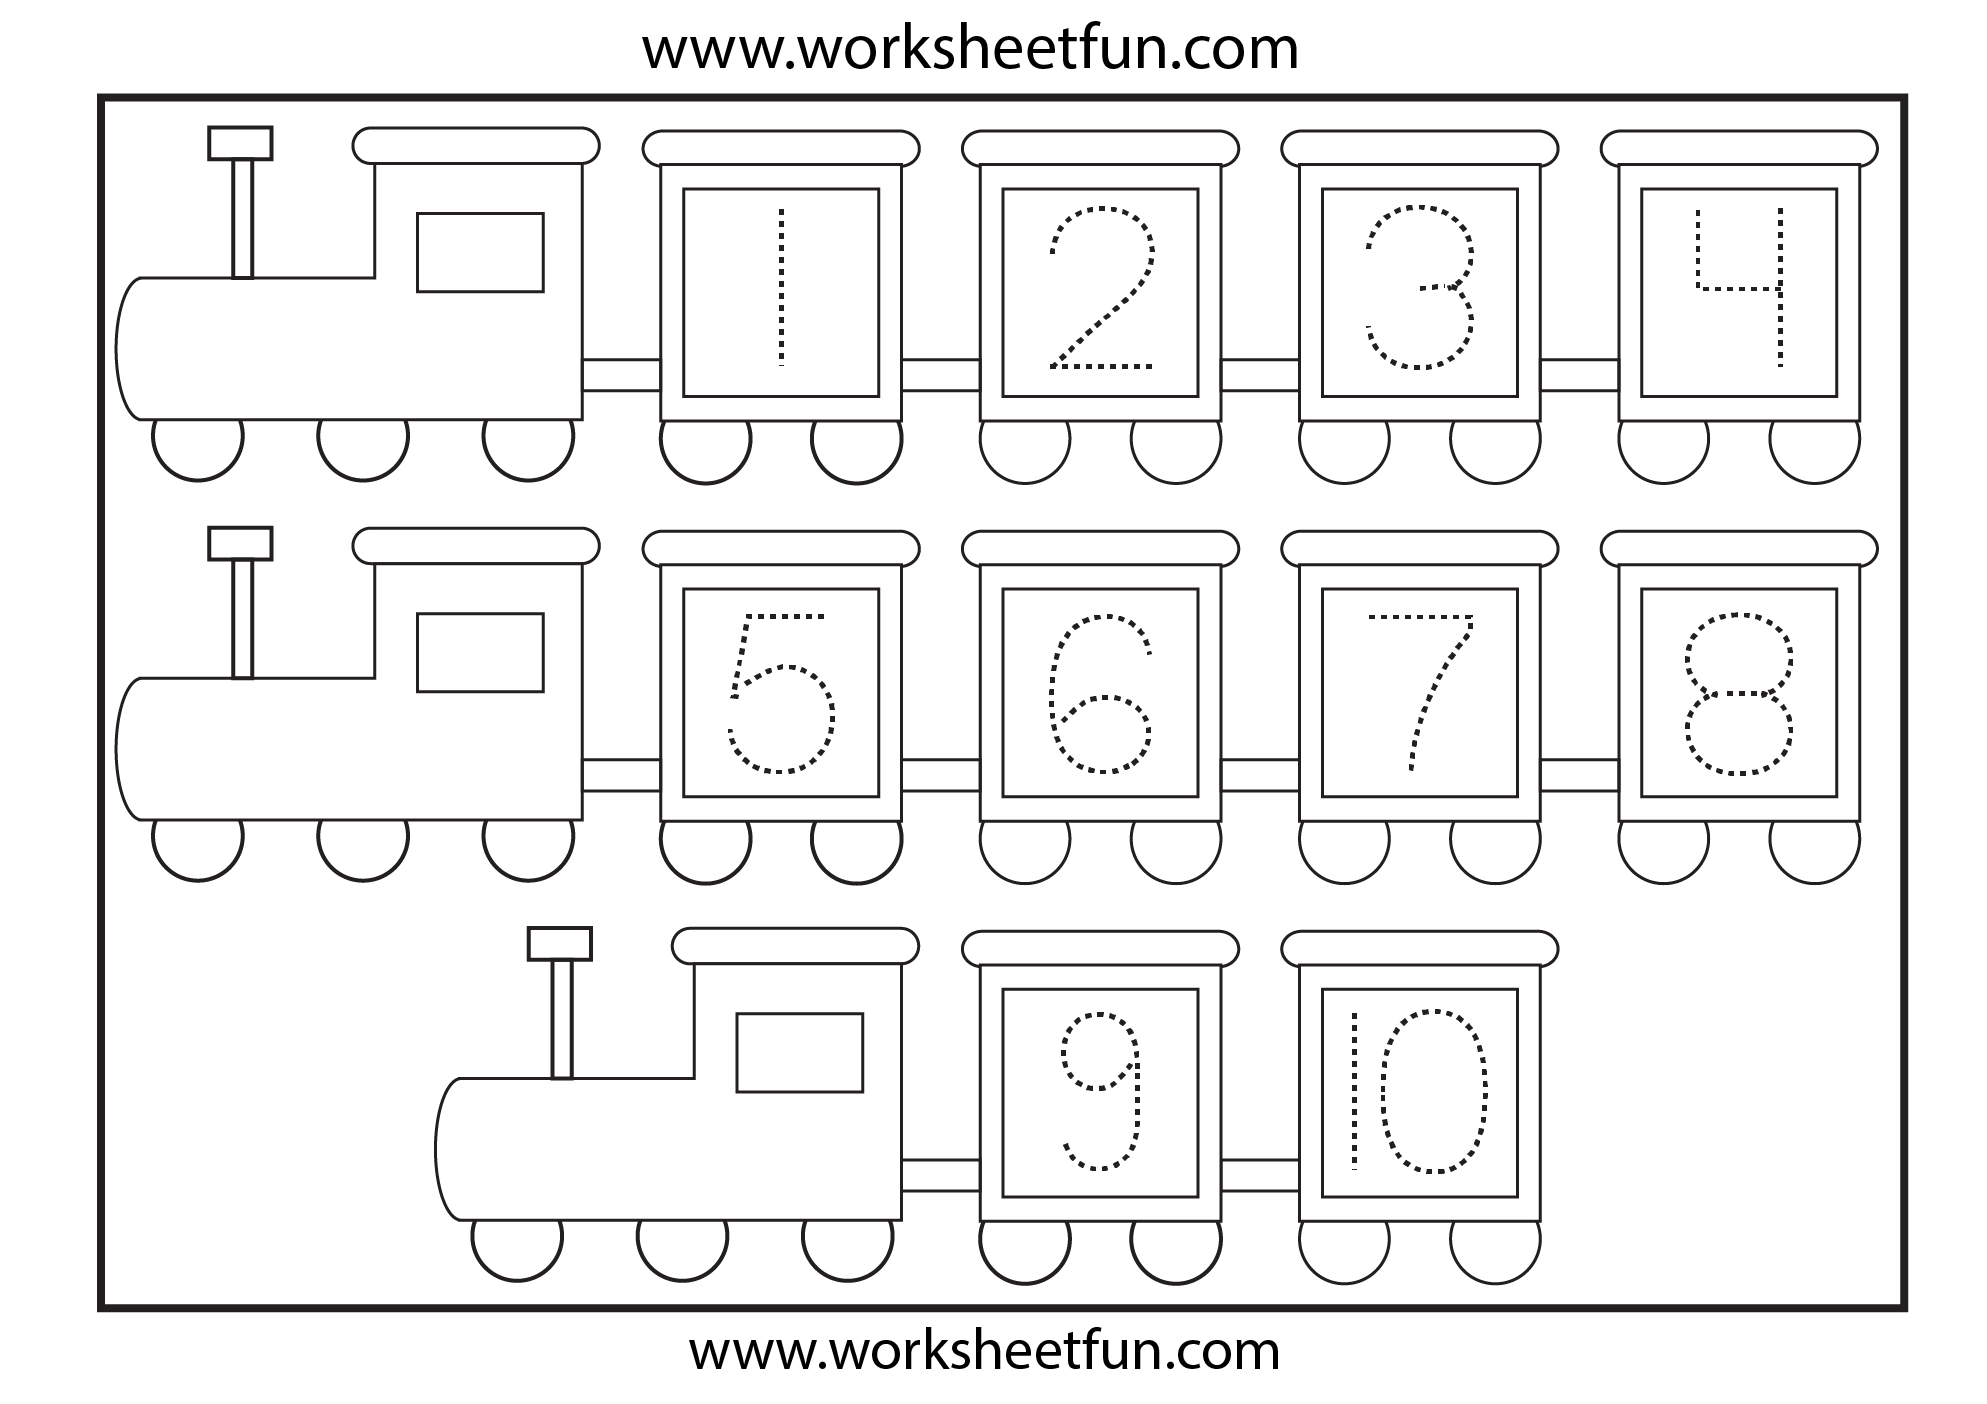 K5 Math Worksheets – K5 Math Worksheets